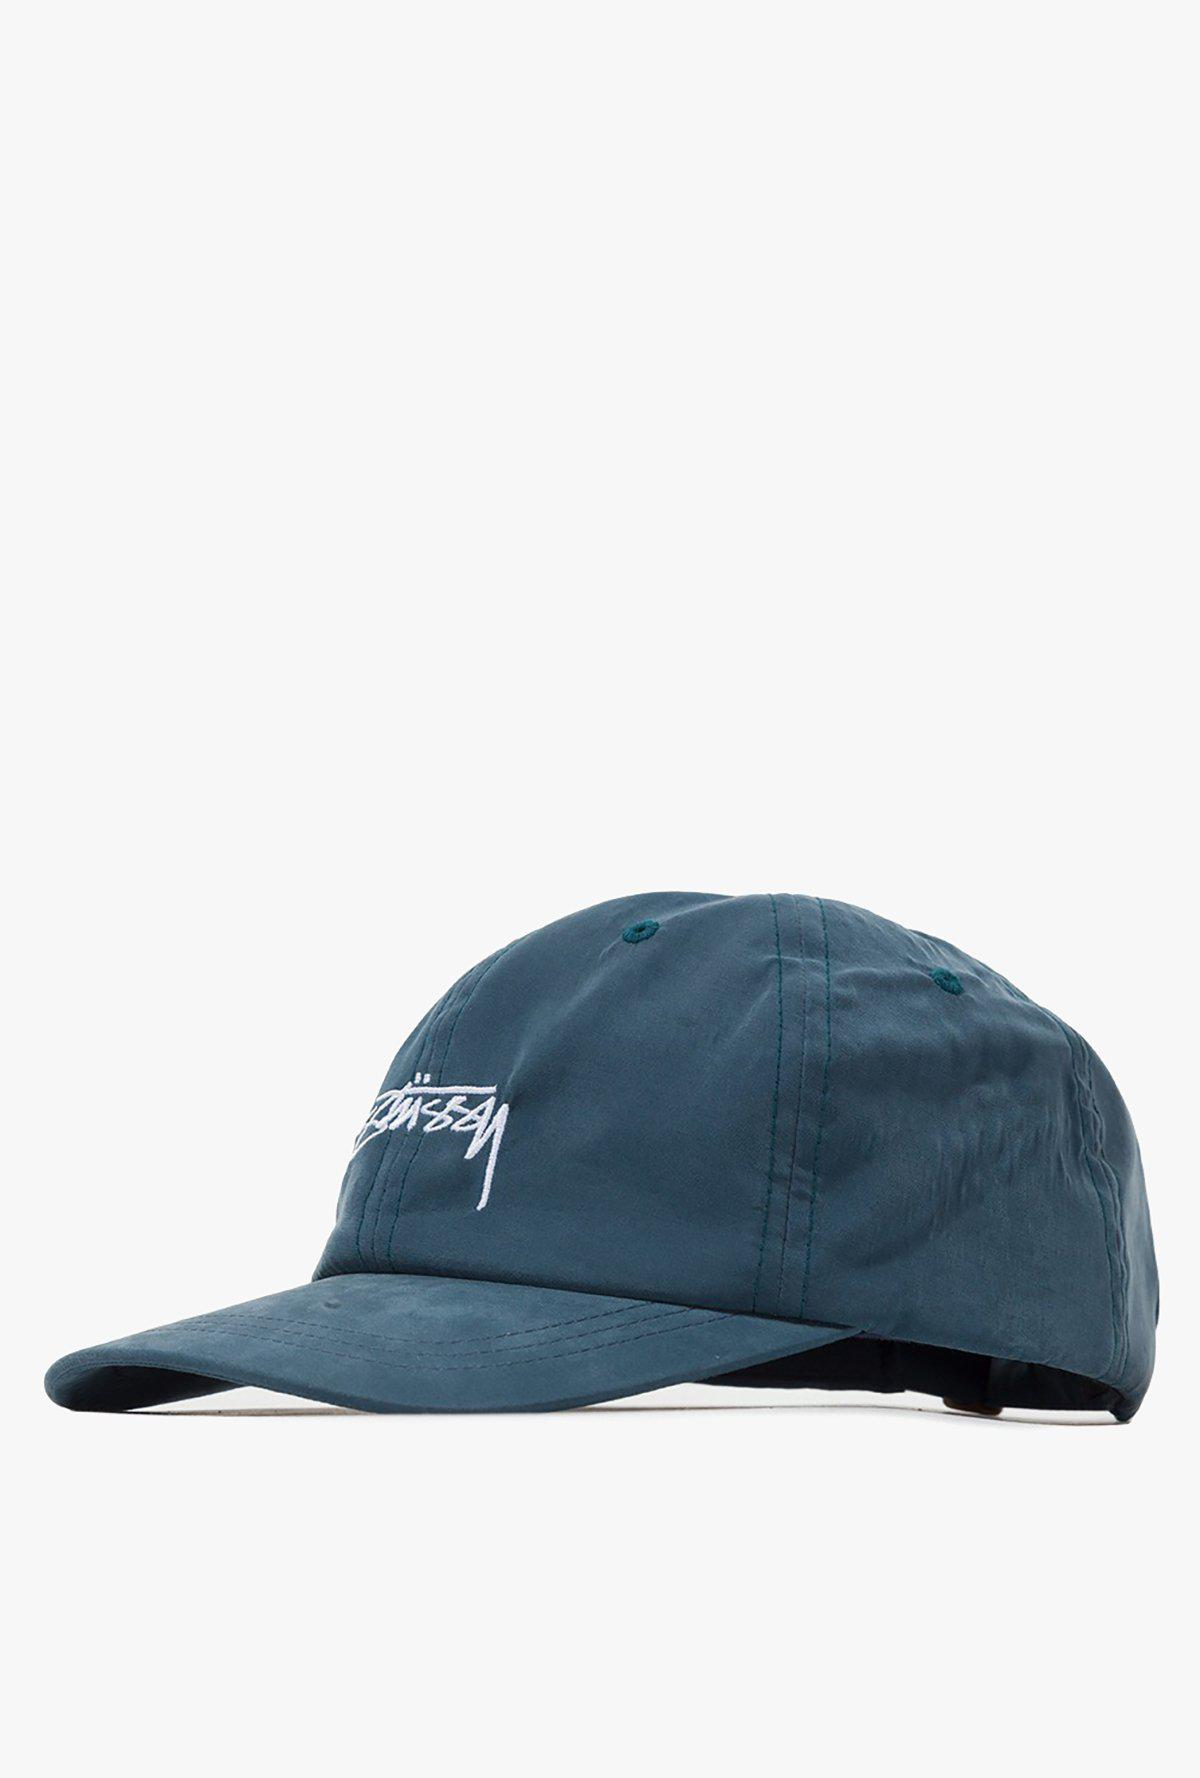 9c2986ac92c Stussy Peached Smooth Stock Low Pro Cap in Blue for Men - Lyst